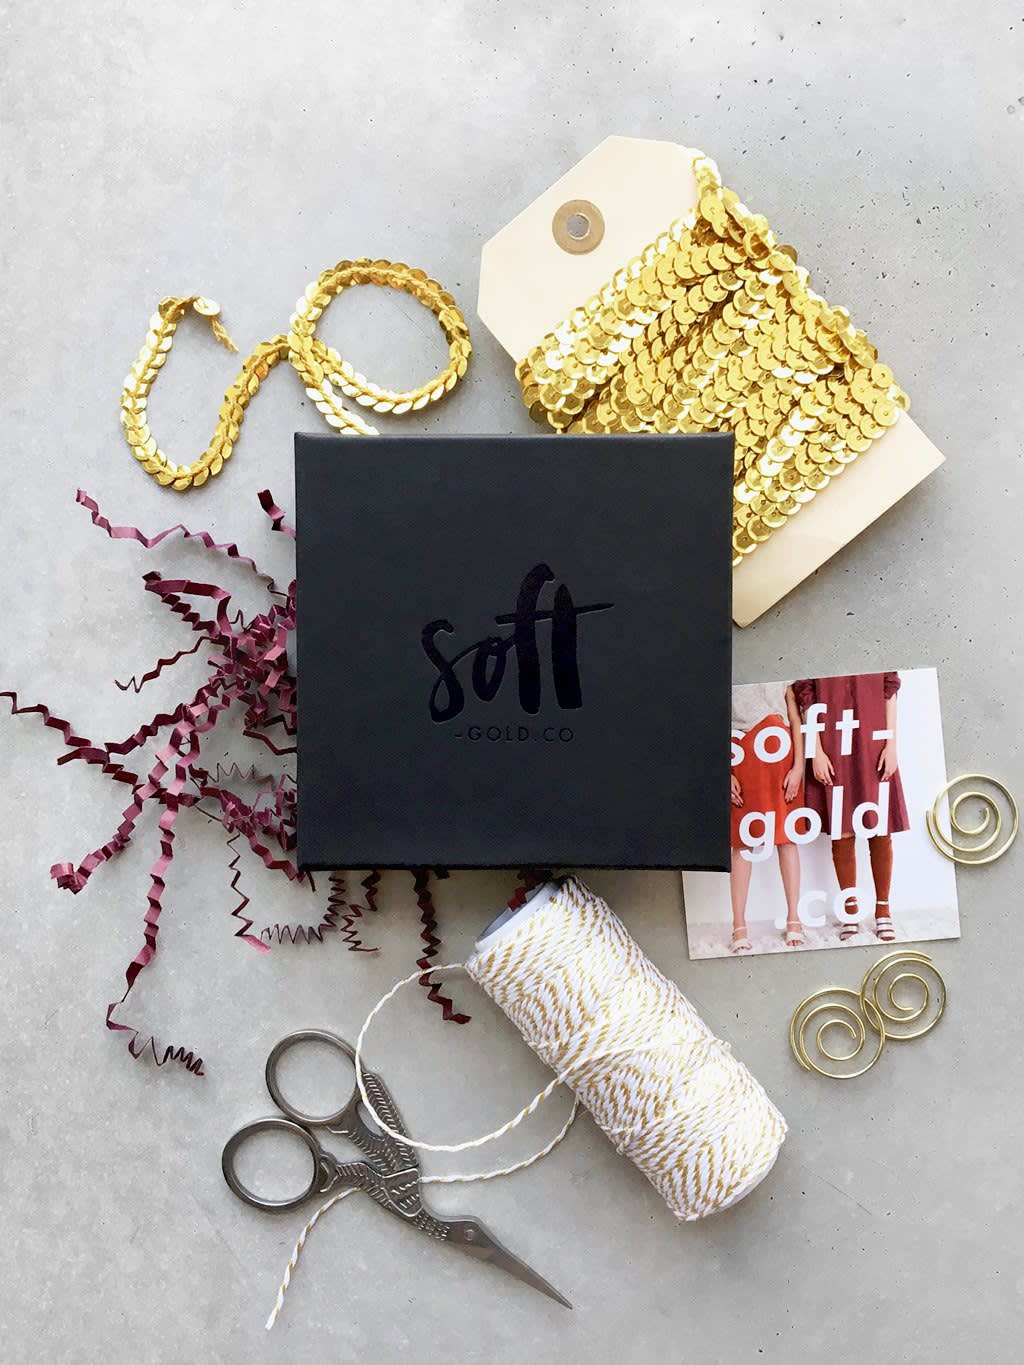 Soft Gold Co